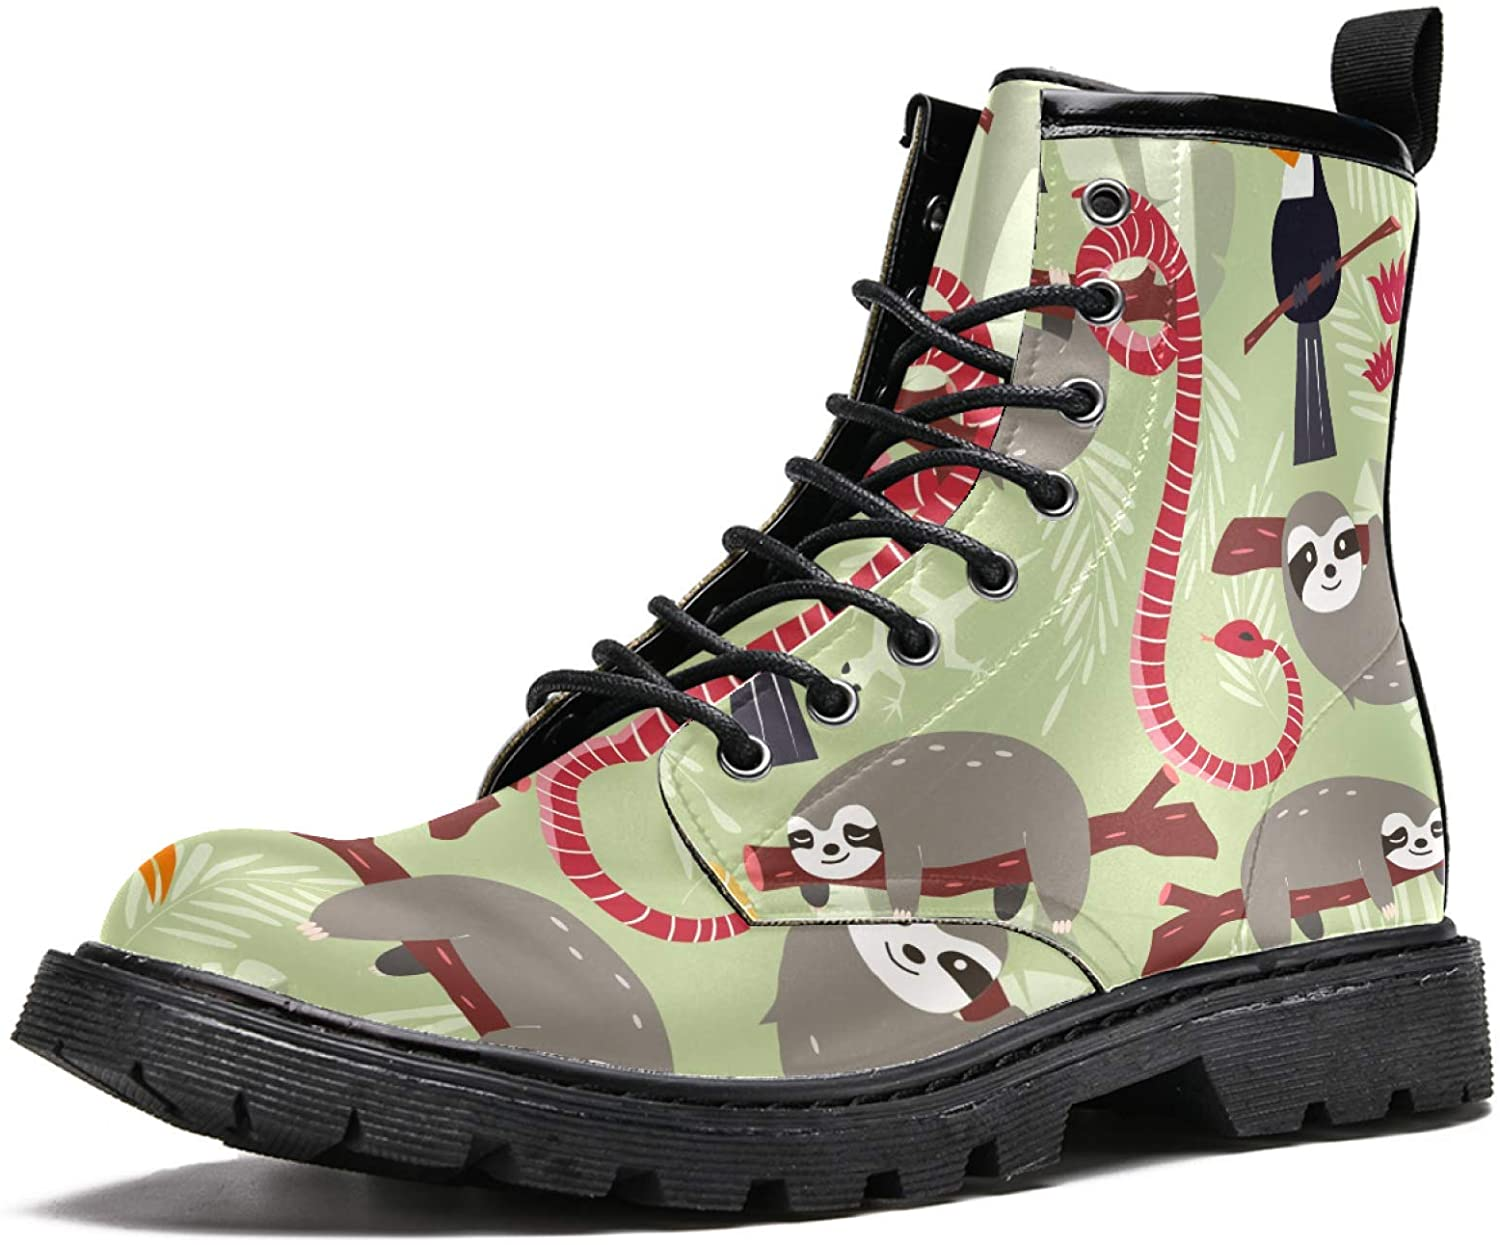 LORVIES Sloth Snake Toucan Bird Men's High Top Boots Lace Up Casual Leather Ankle Shoes